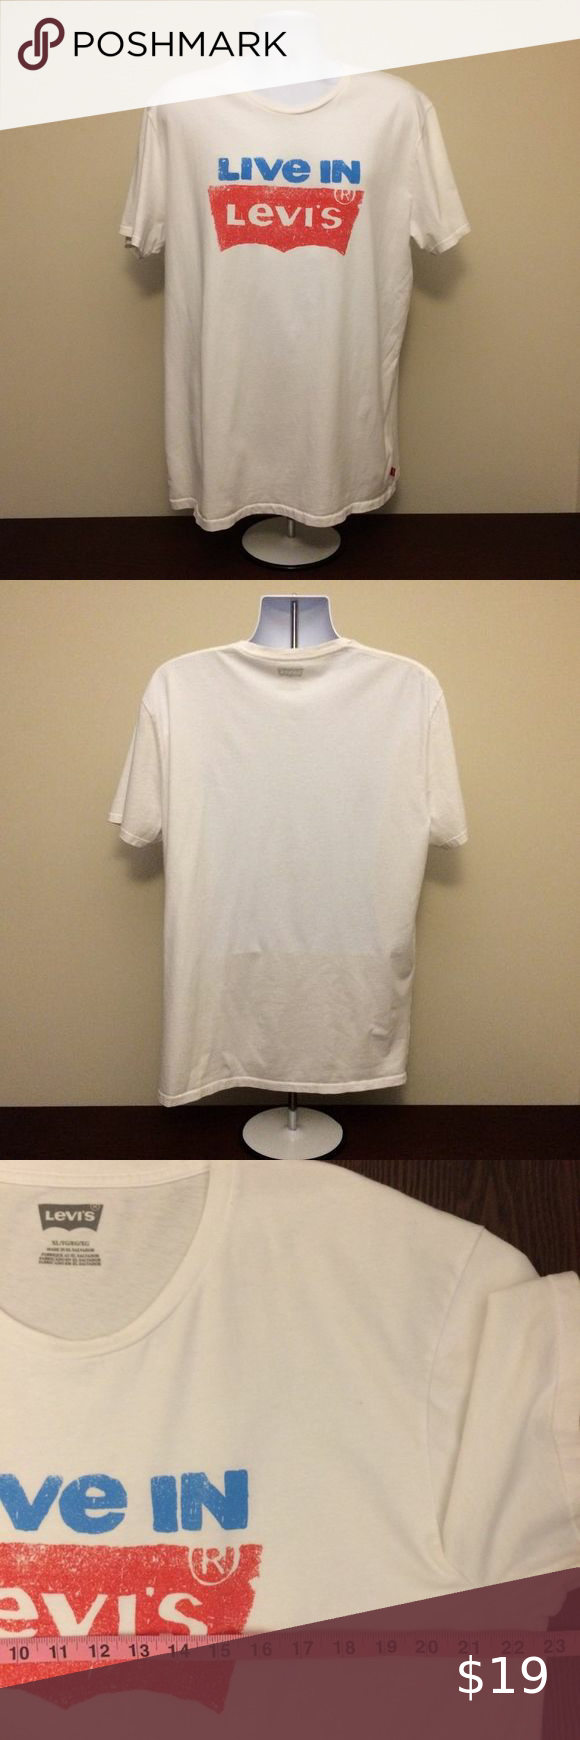 white and blue graphic tee mens